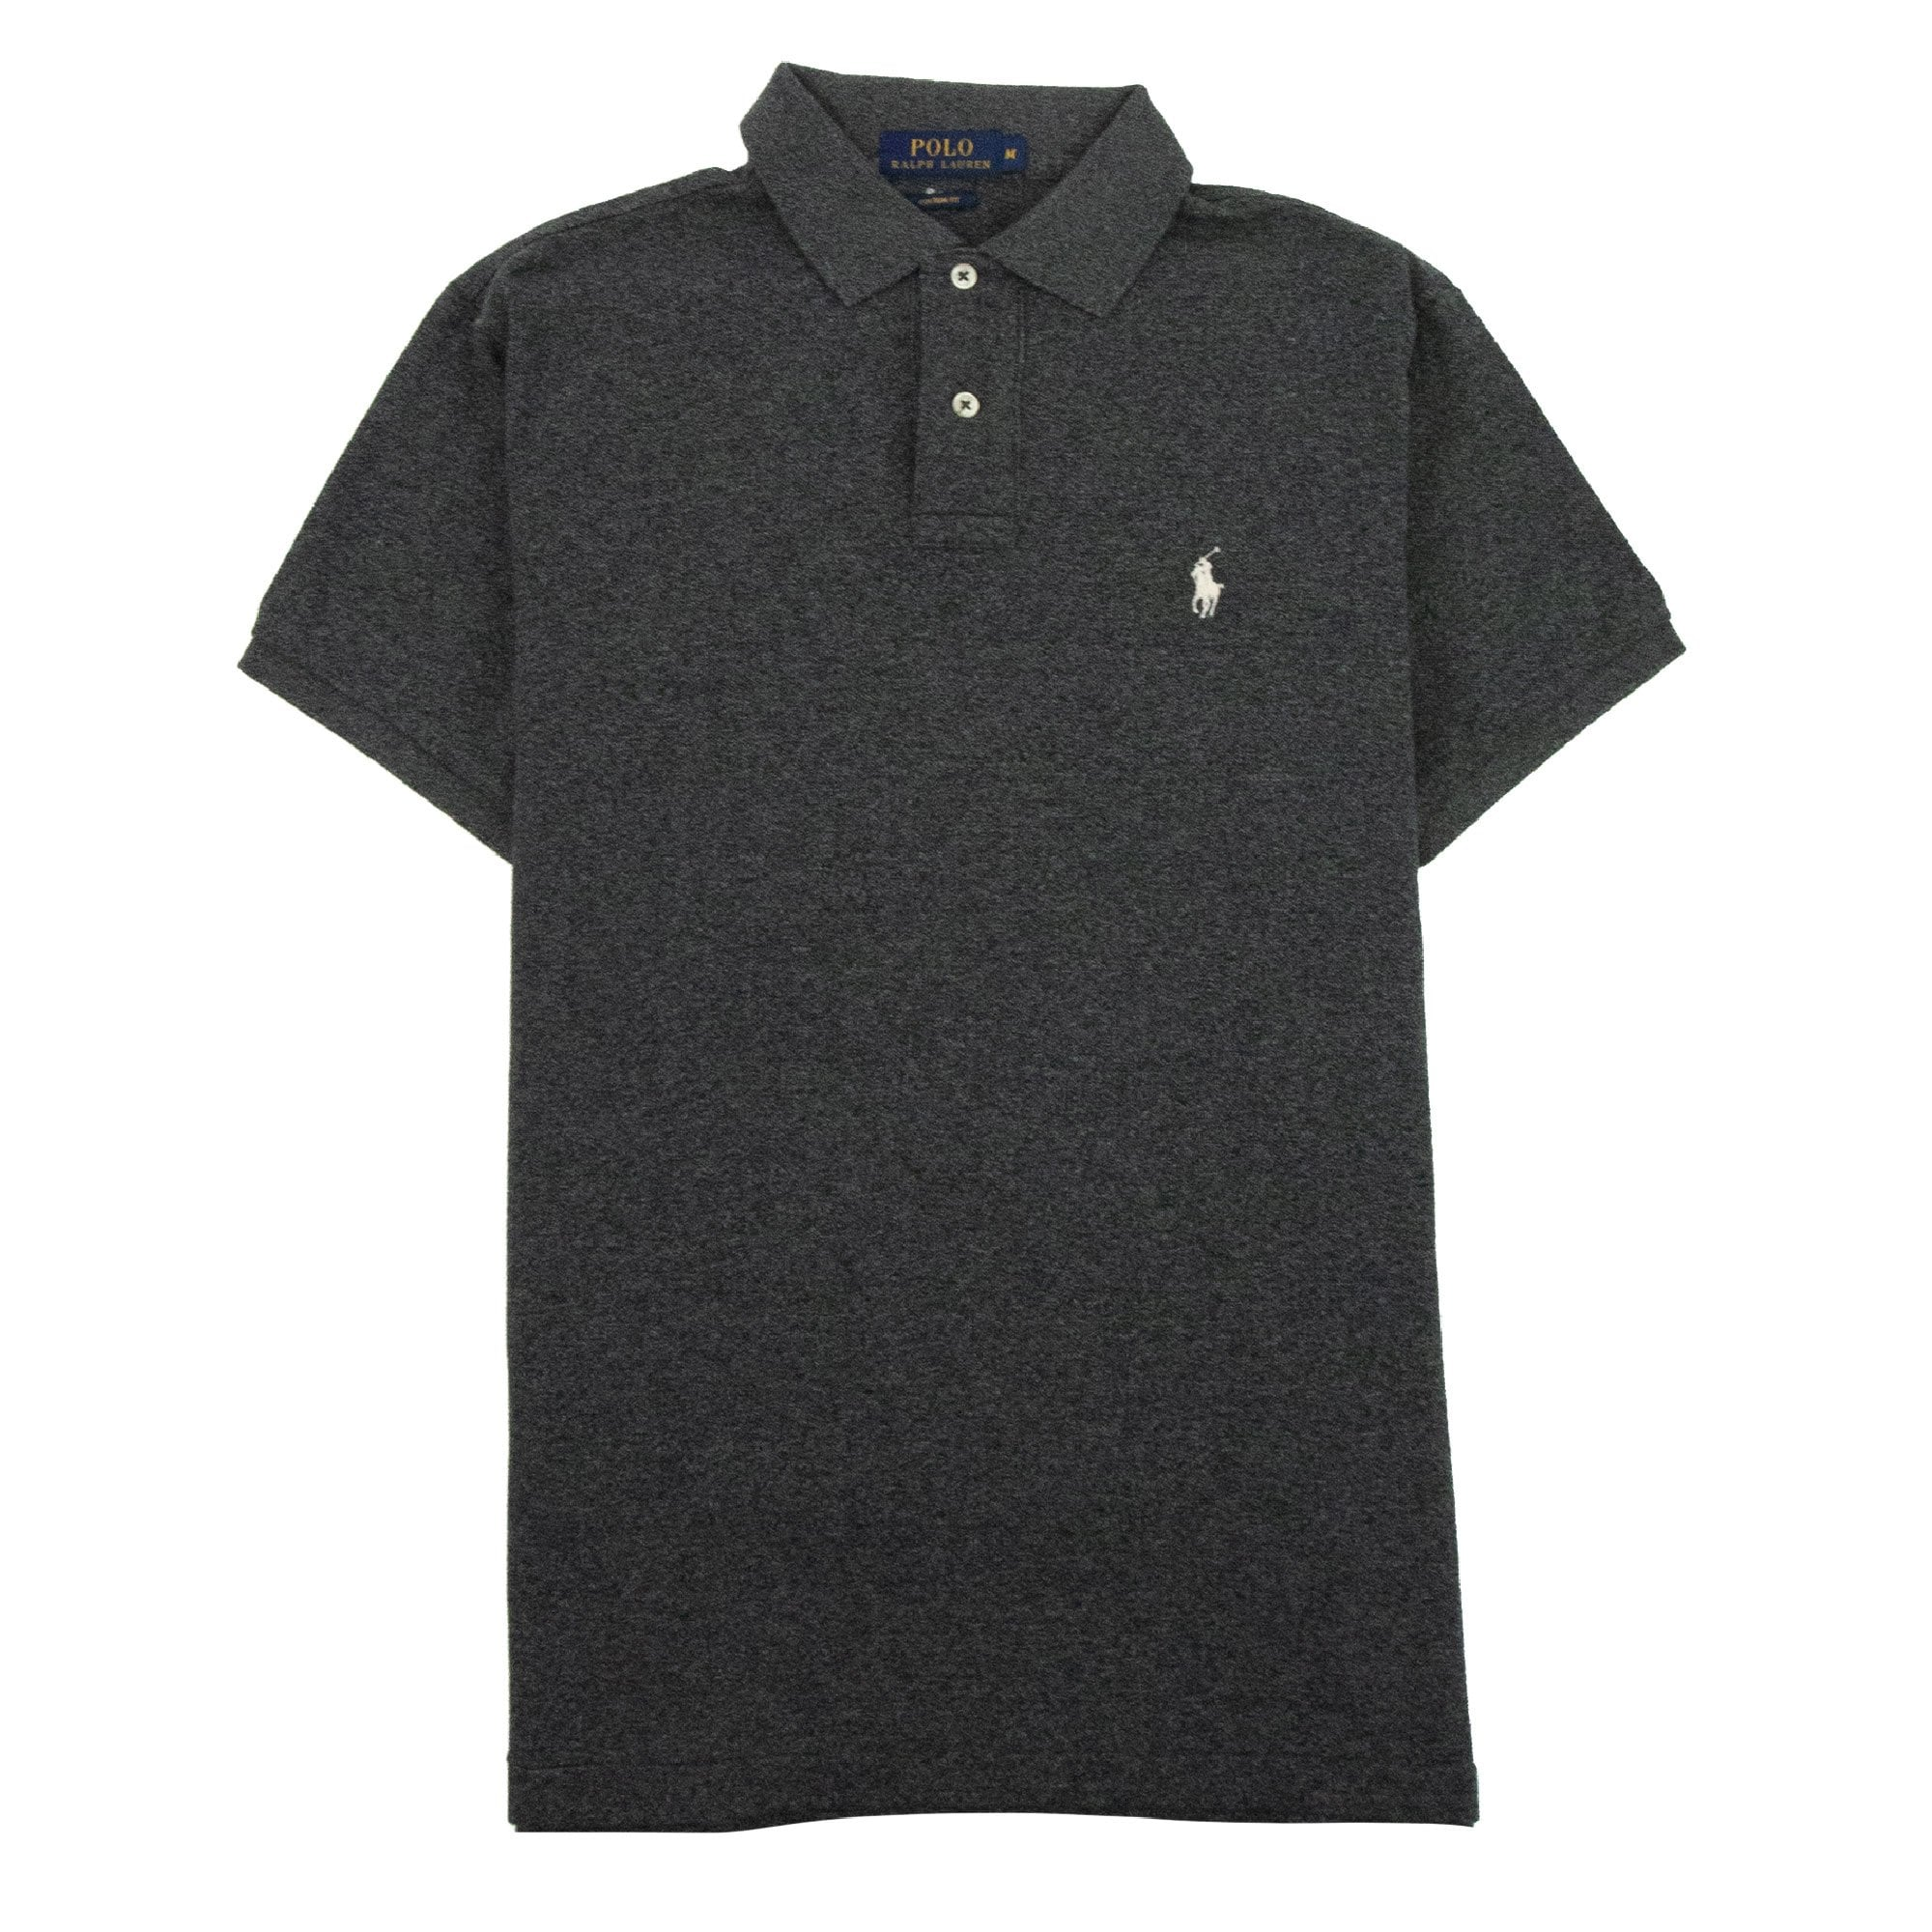 NEW Polo Ralph Lauren Polo Shirt! Custom Fit 3 Colorful